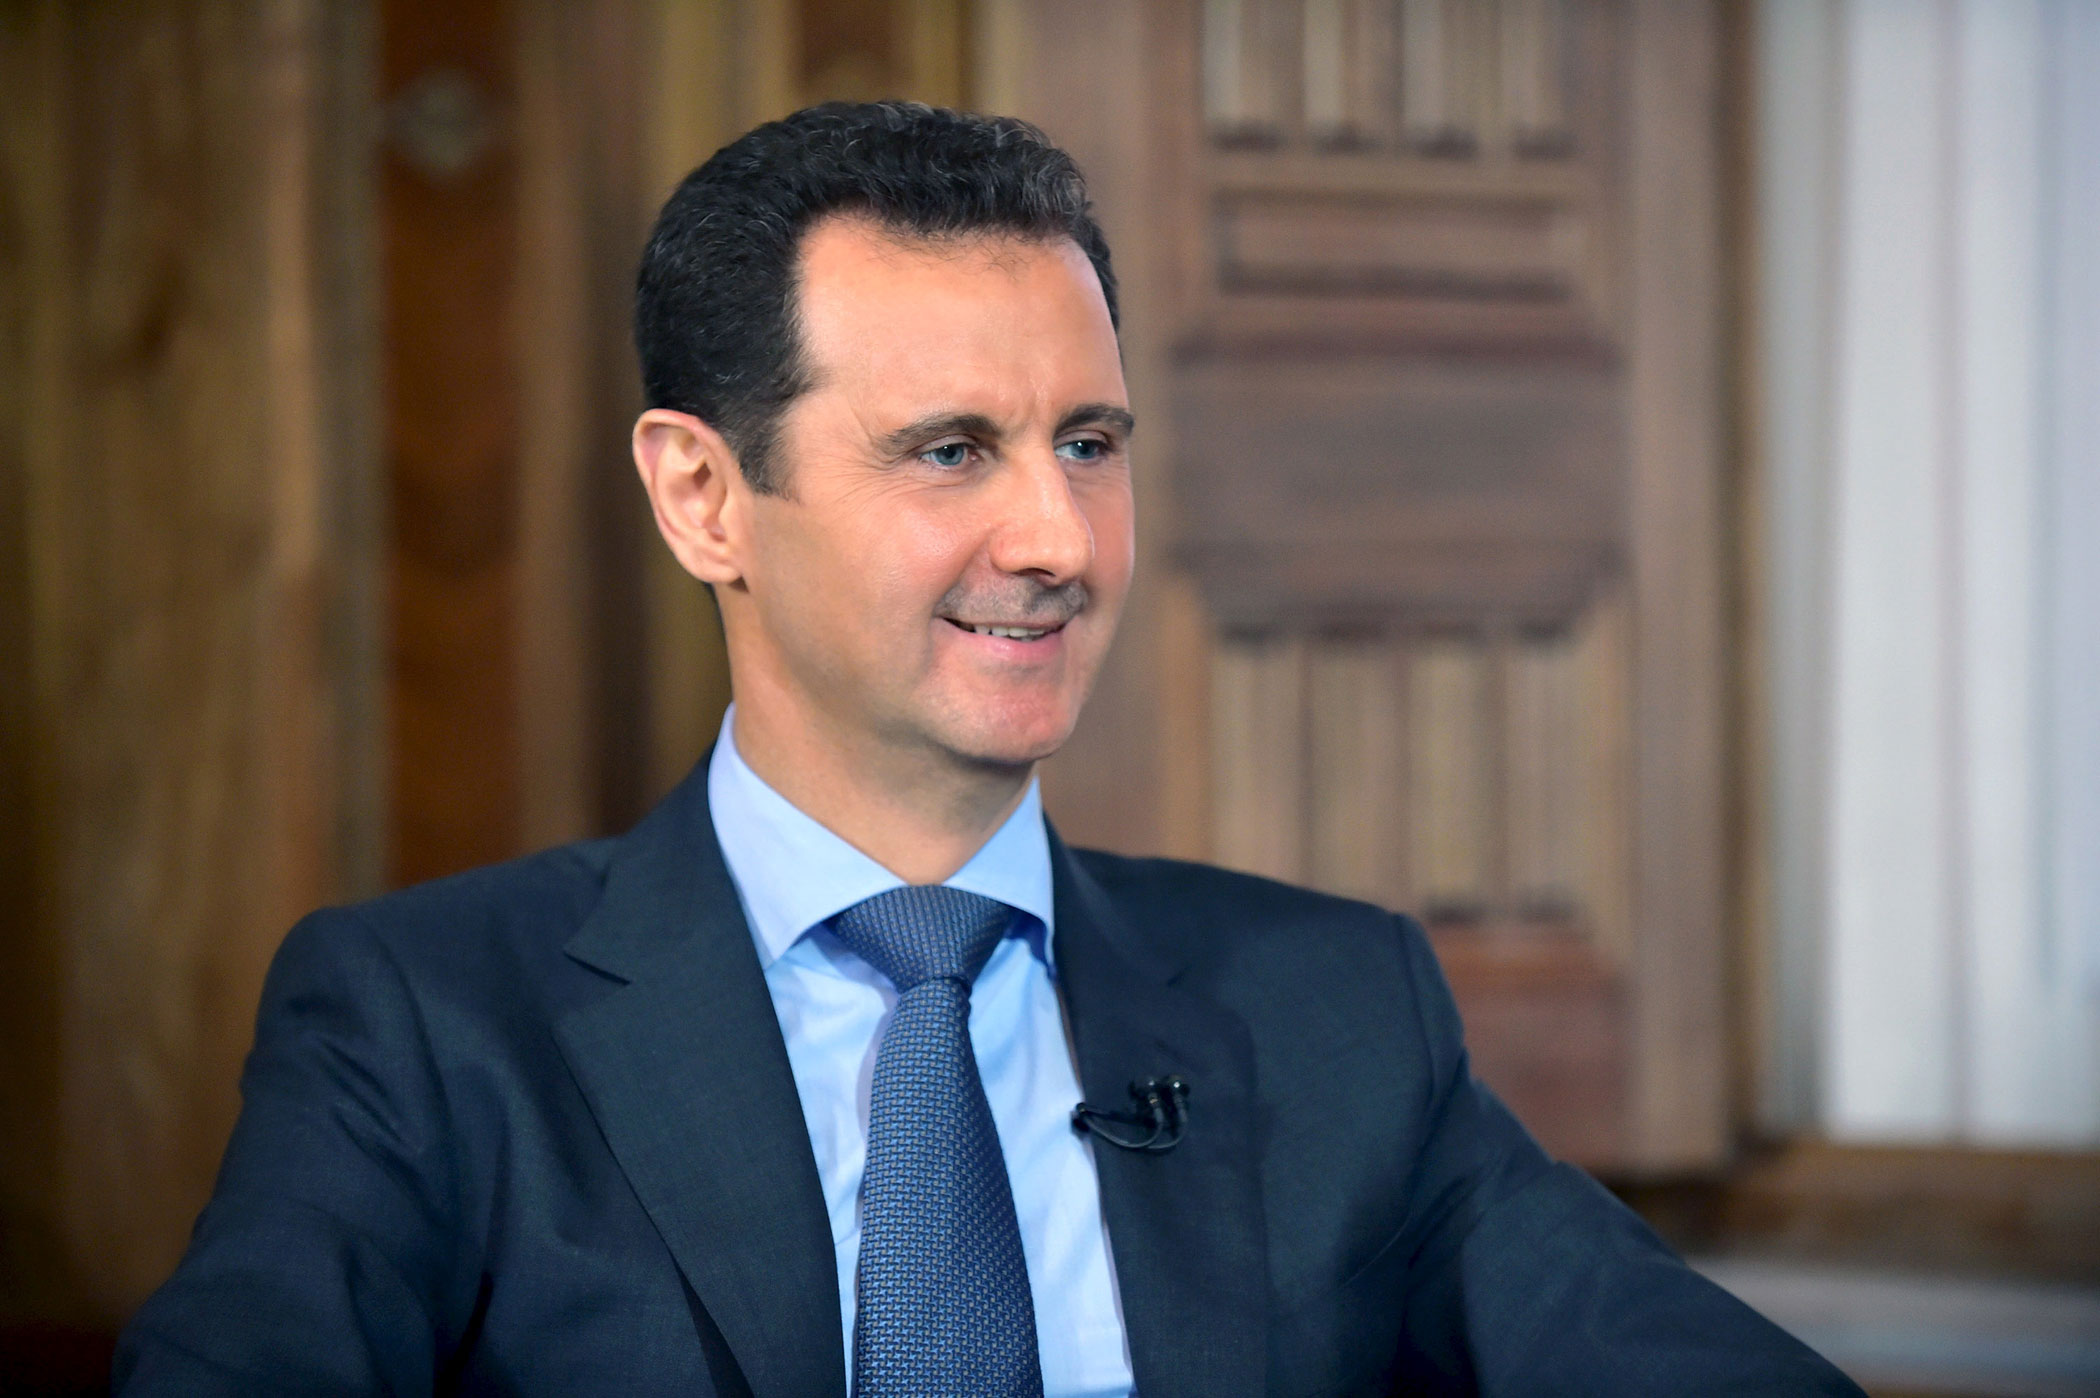 Syria's President Bashar al-Assad answers questions during an interview with al-Manar's journalist Amro Nassef on Aug. 25, 2015 in Damascus, Syria.